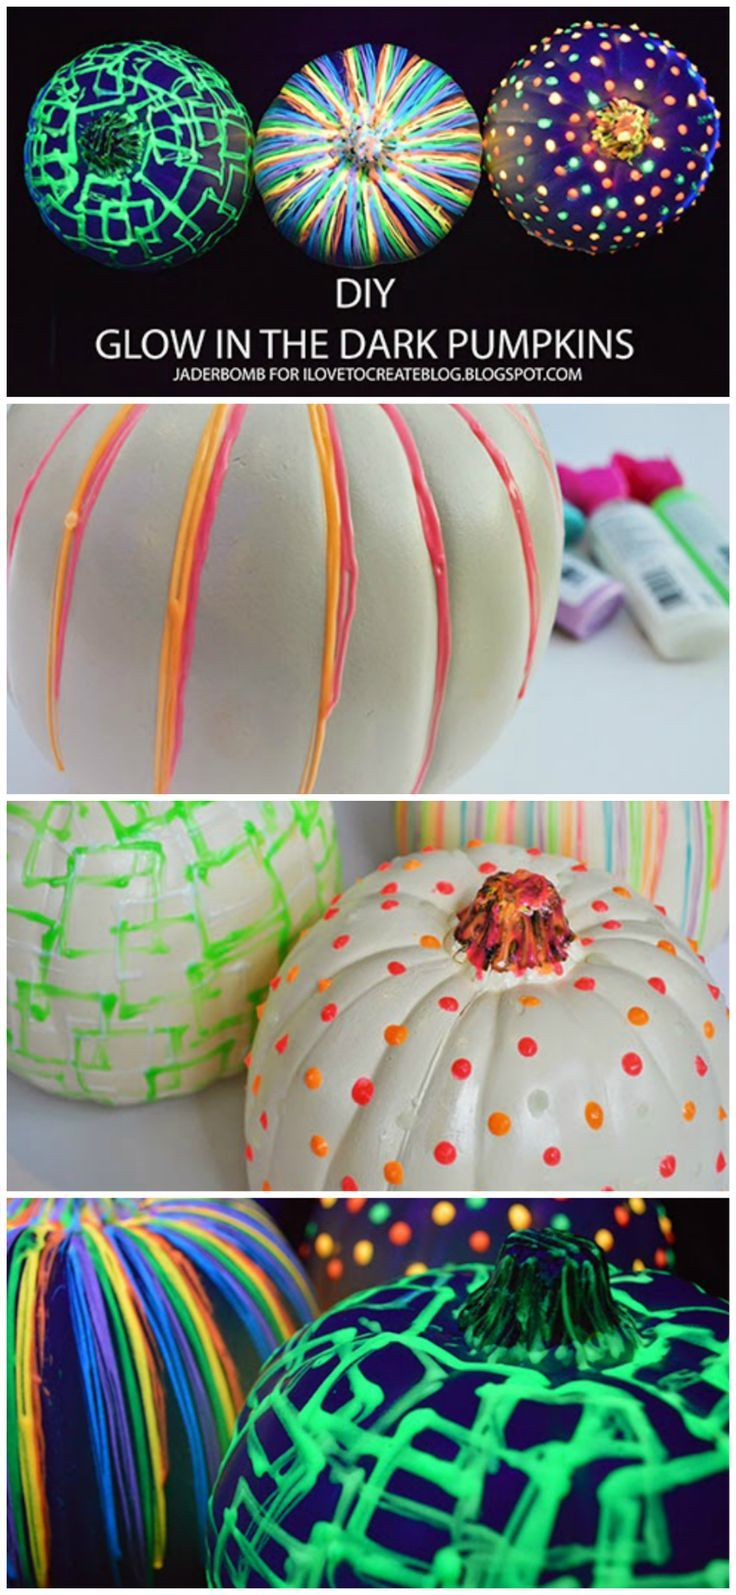 Amazing no-carve pumpkin project. The glow in the dark detailing makes these extra special!